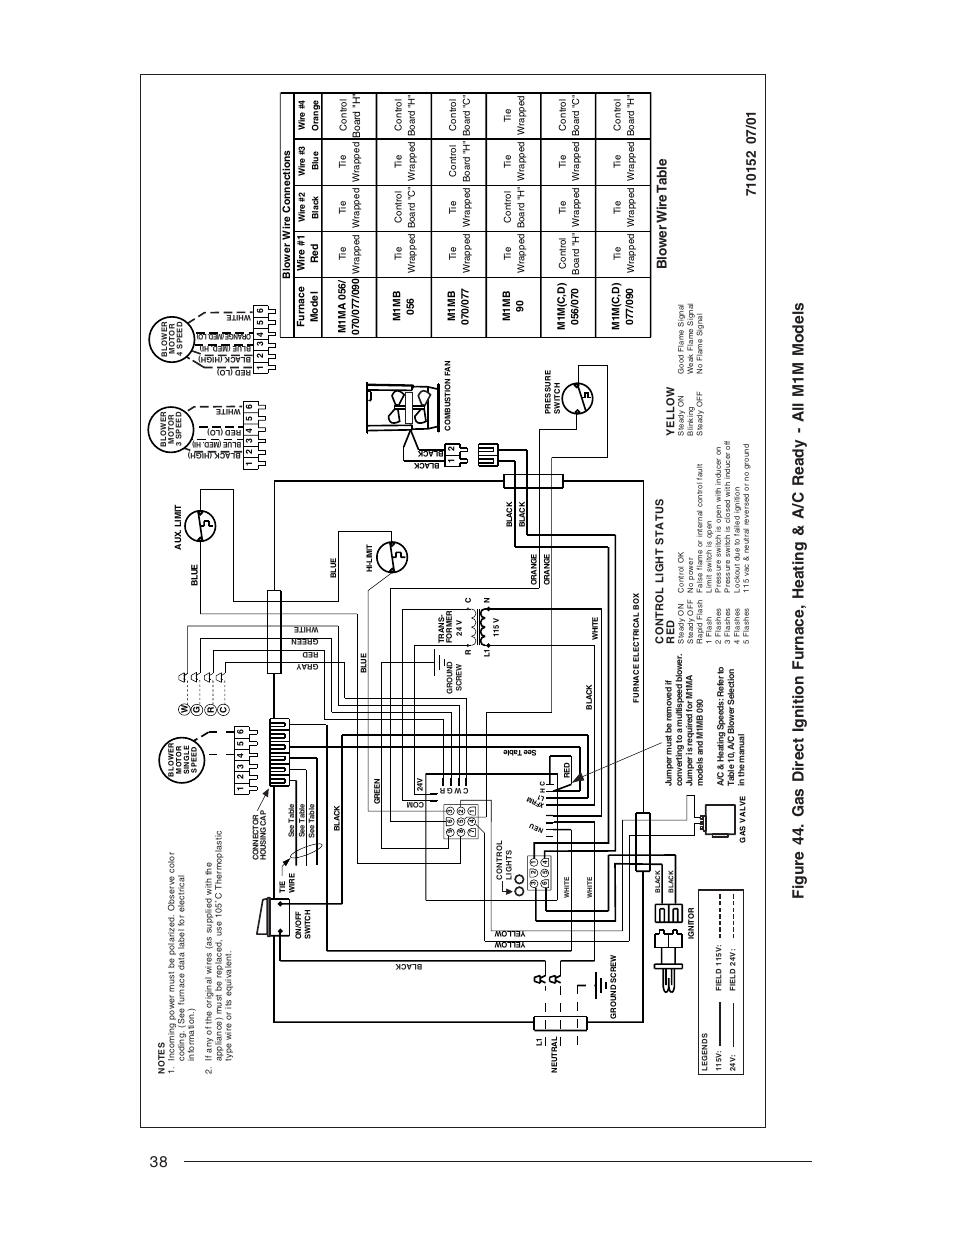 medium resolution of nordyne forced air gas and oil furnace m1m user manual page 38nordyne forced air gas and